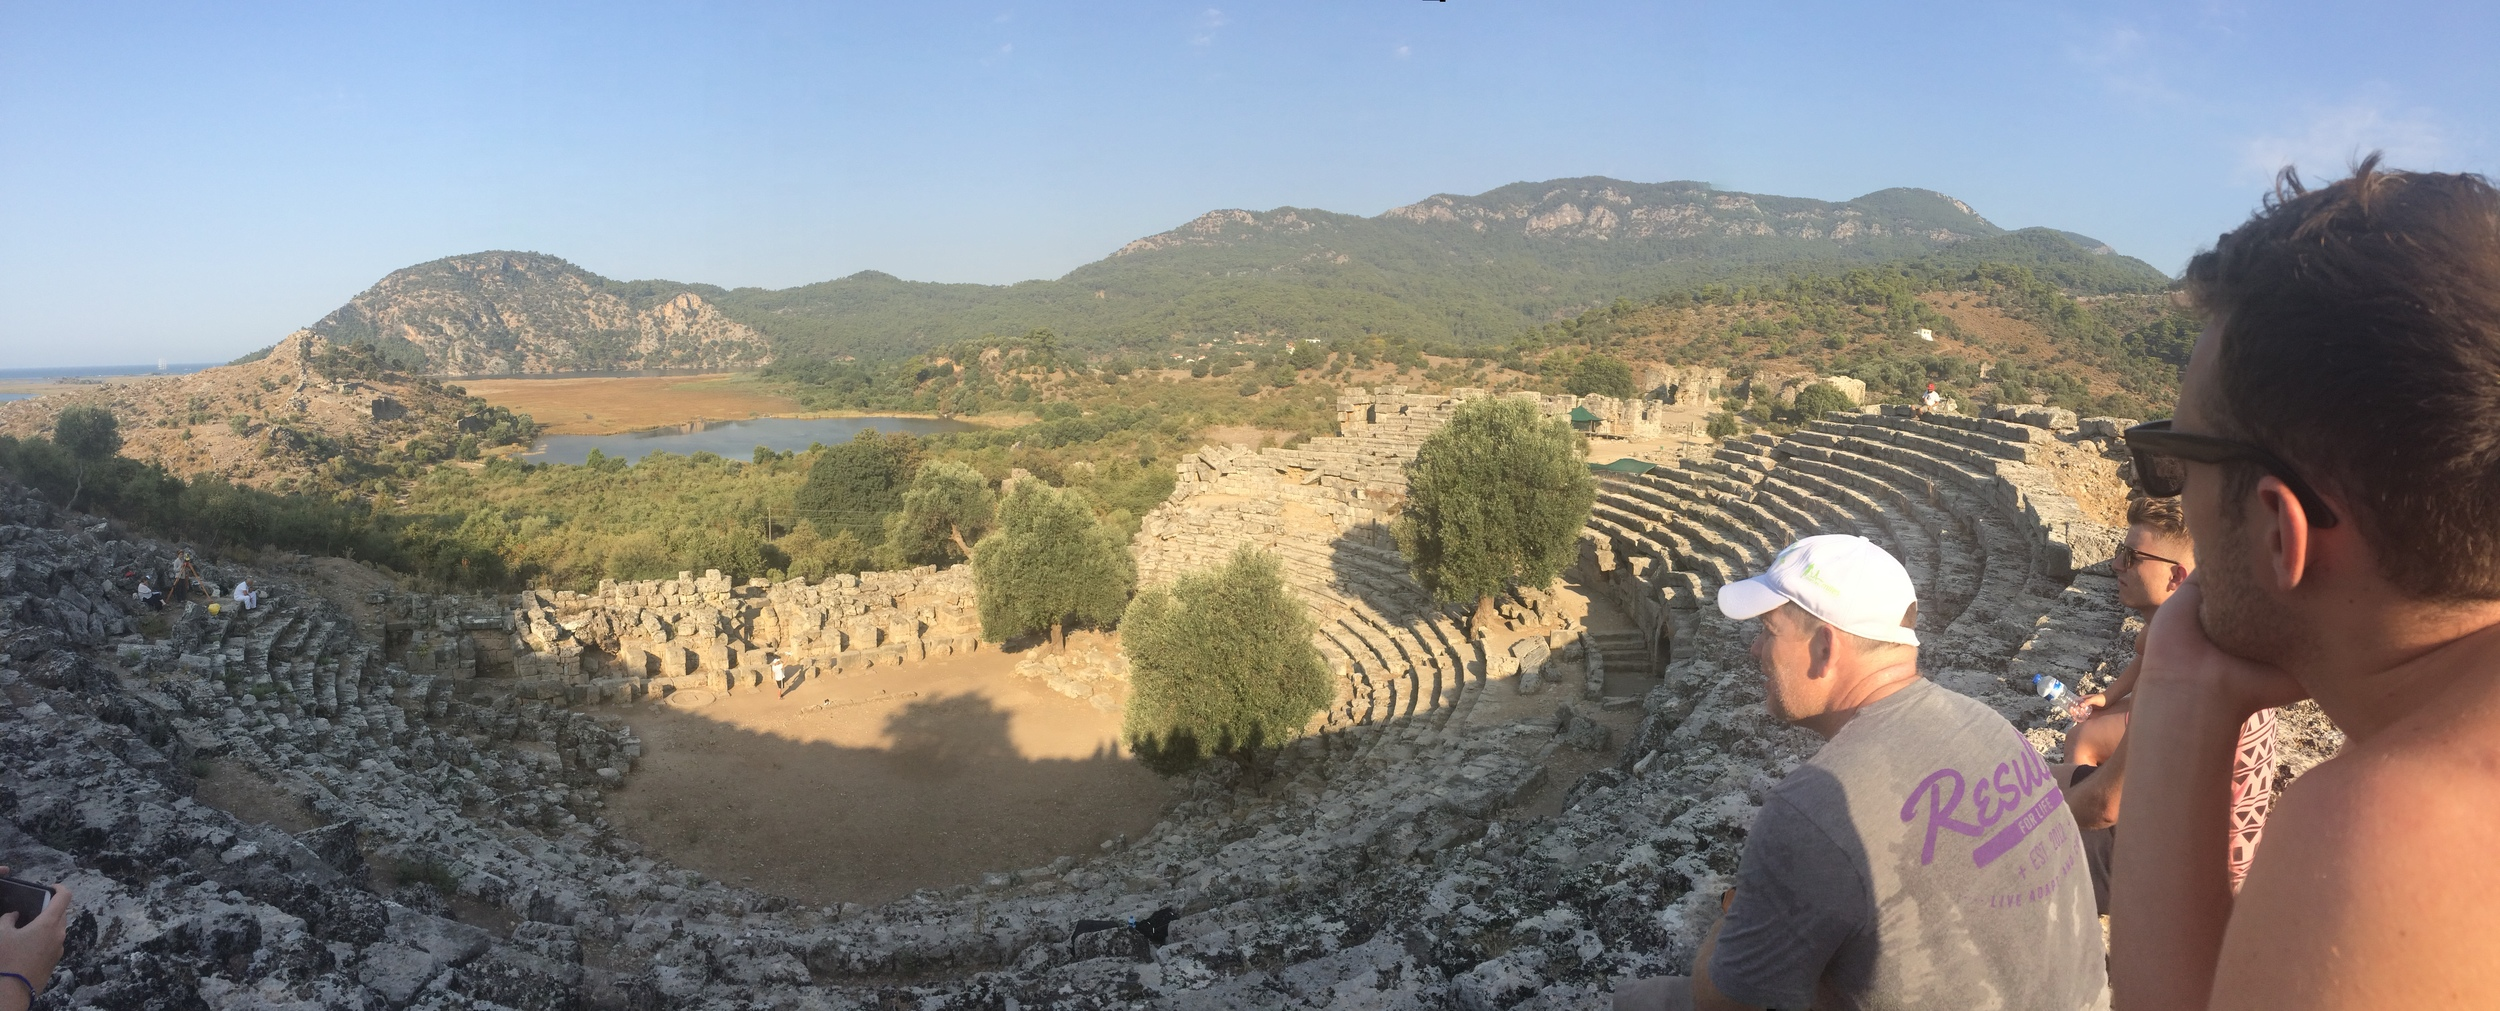 Looking over the amphitheatre, Kaunos.